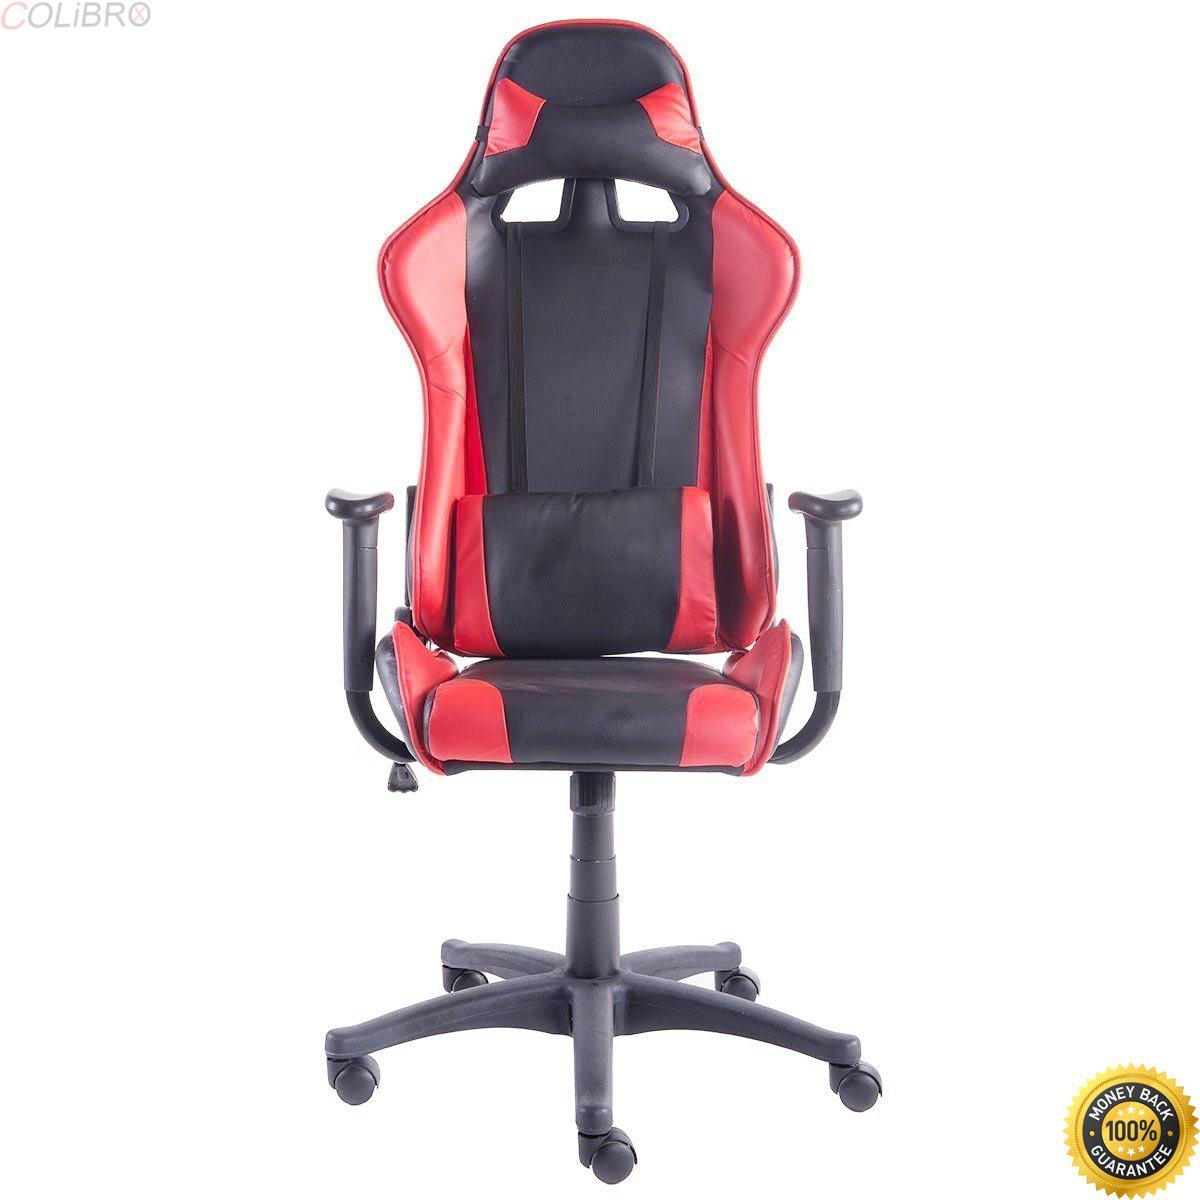 Awe Inspiring Cheap Gaming Chairs Currys Find Gaming Chairs Currys Deals Ibusinesslaw Wood Chair Design Ideas Ibusinesslaworg